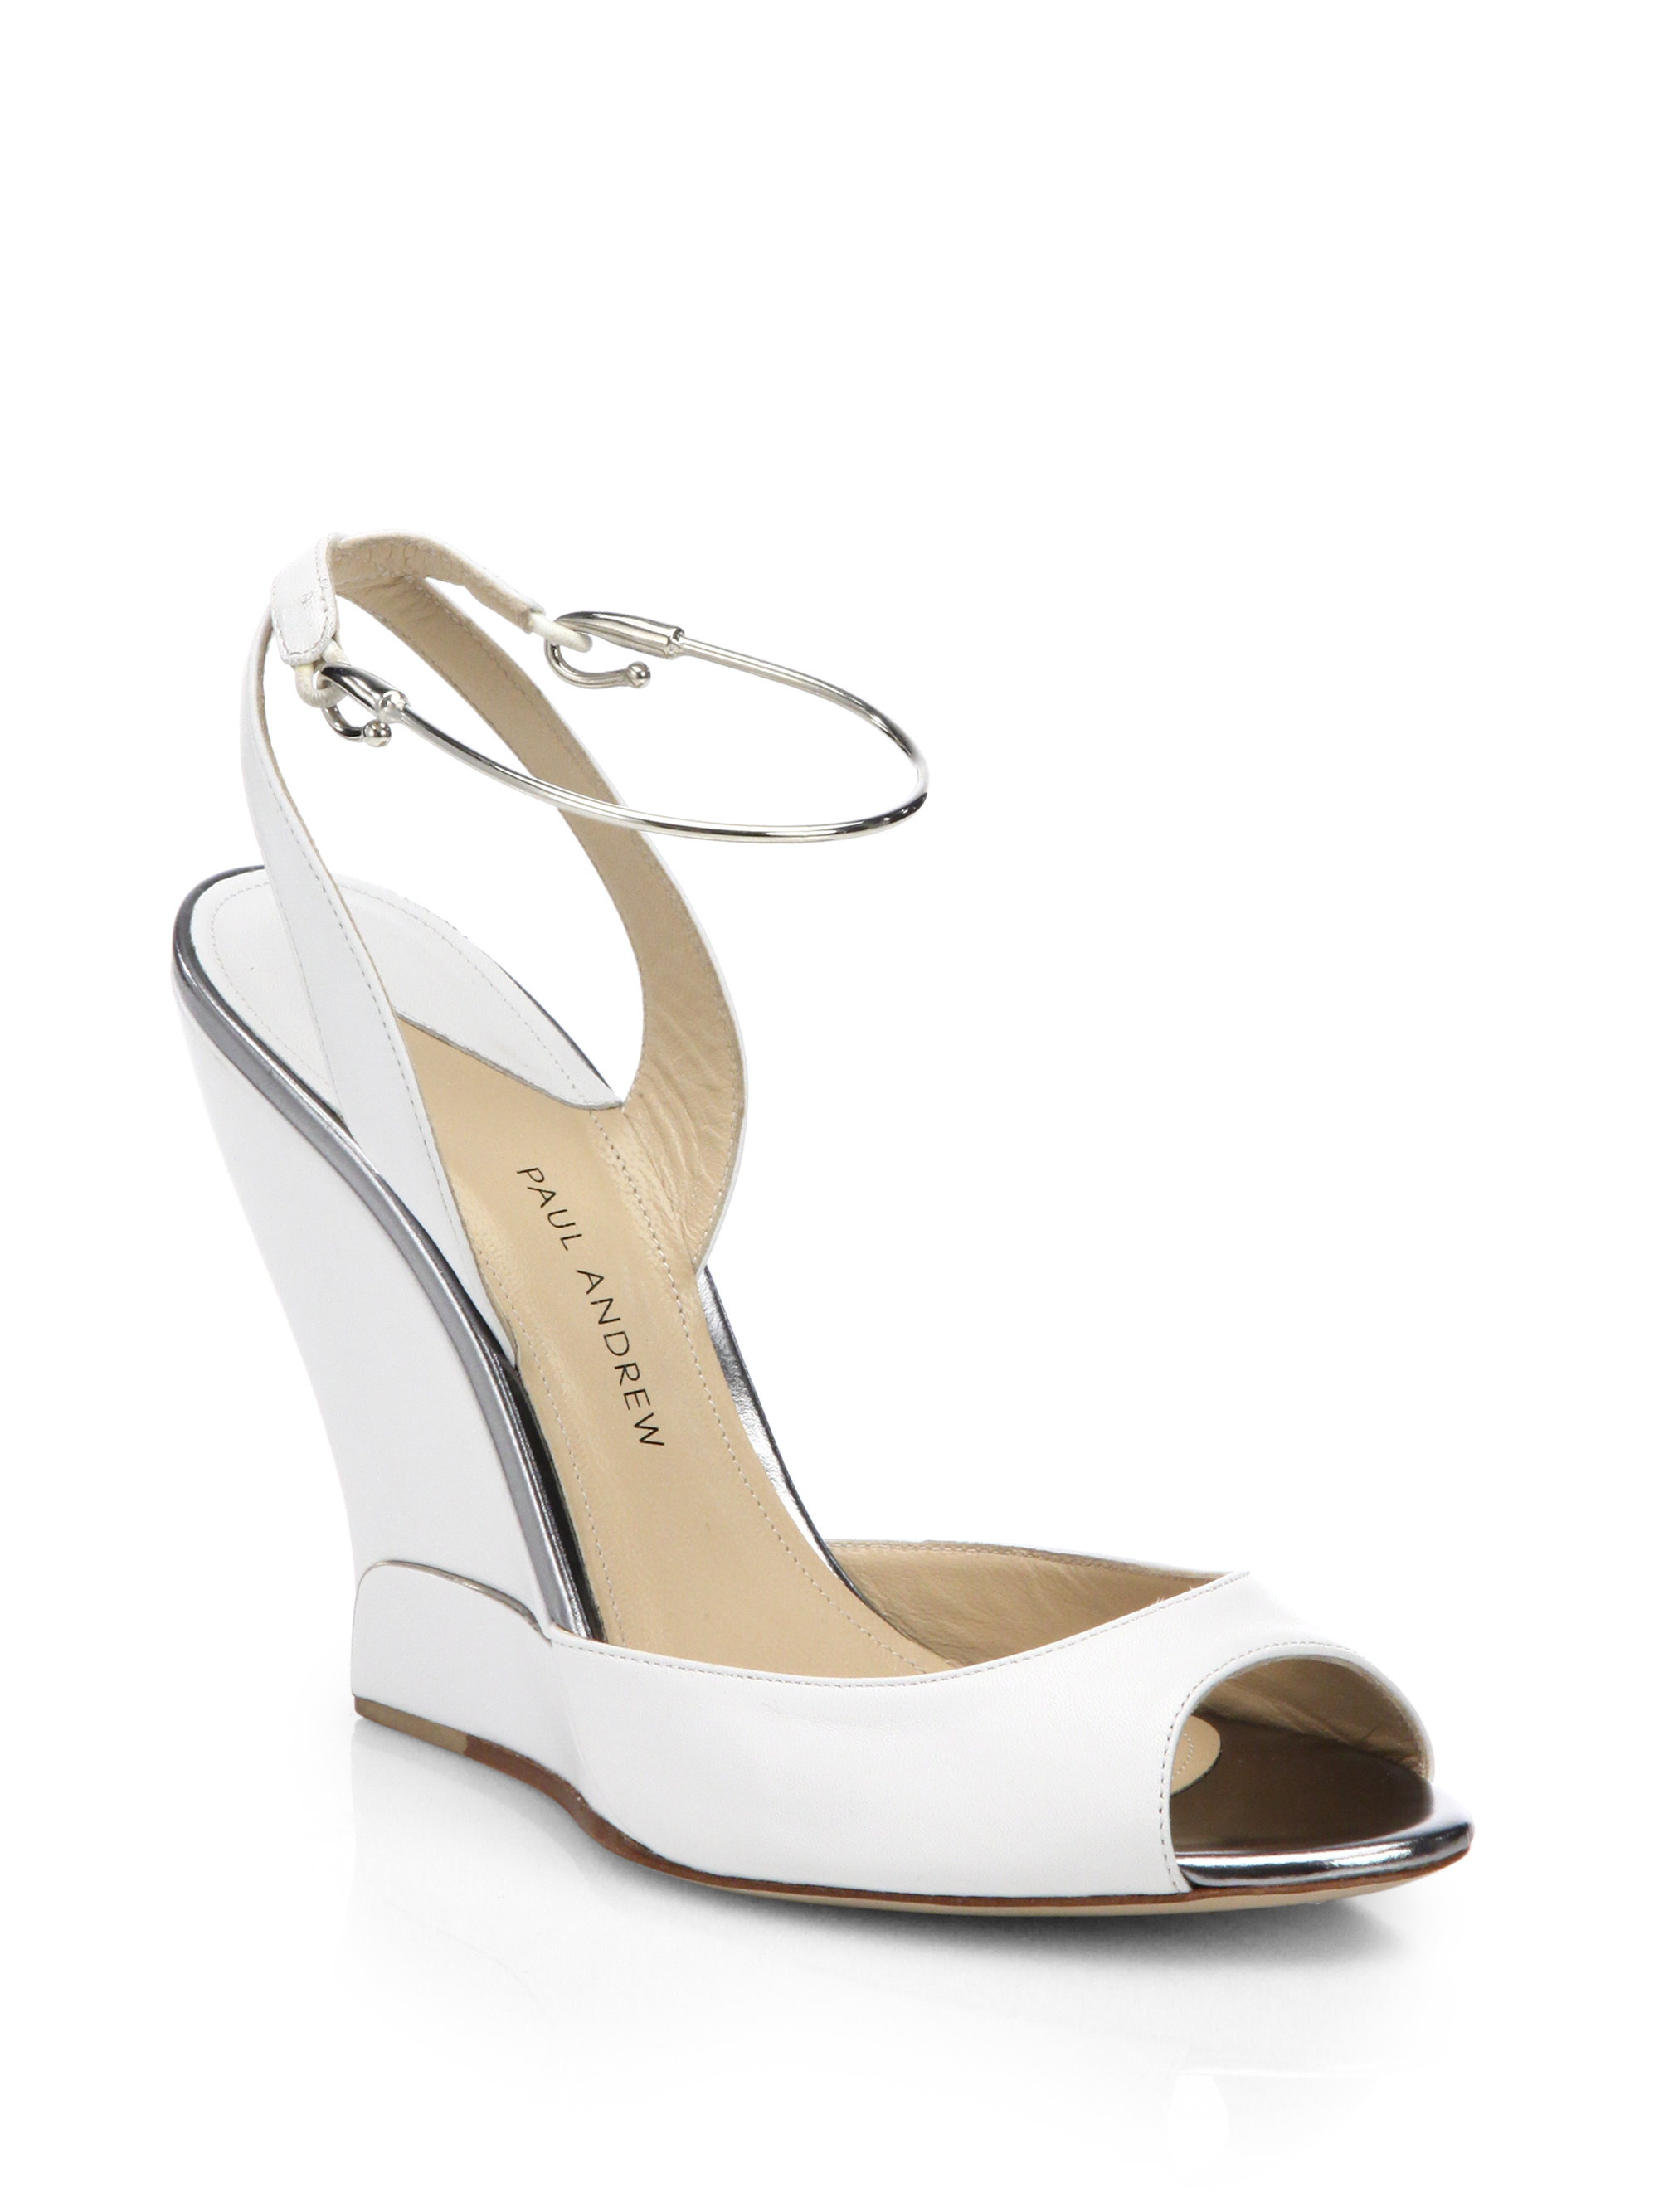 paul andrew delphi leather open toe wedge sandals in white